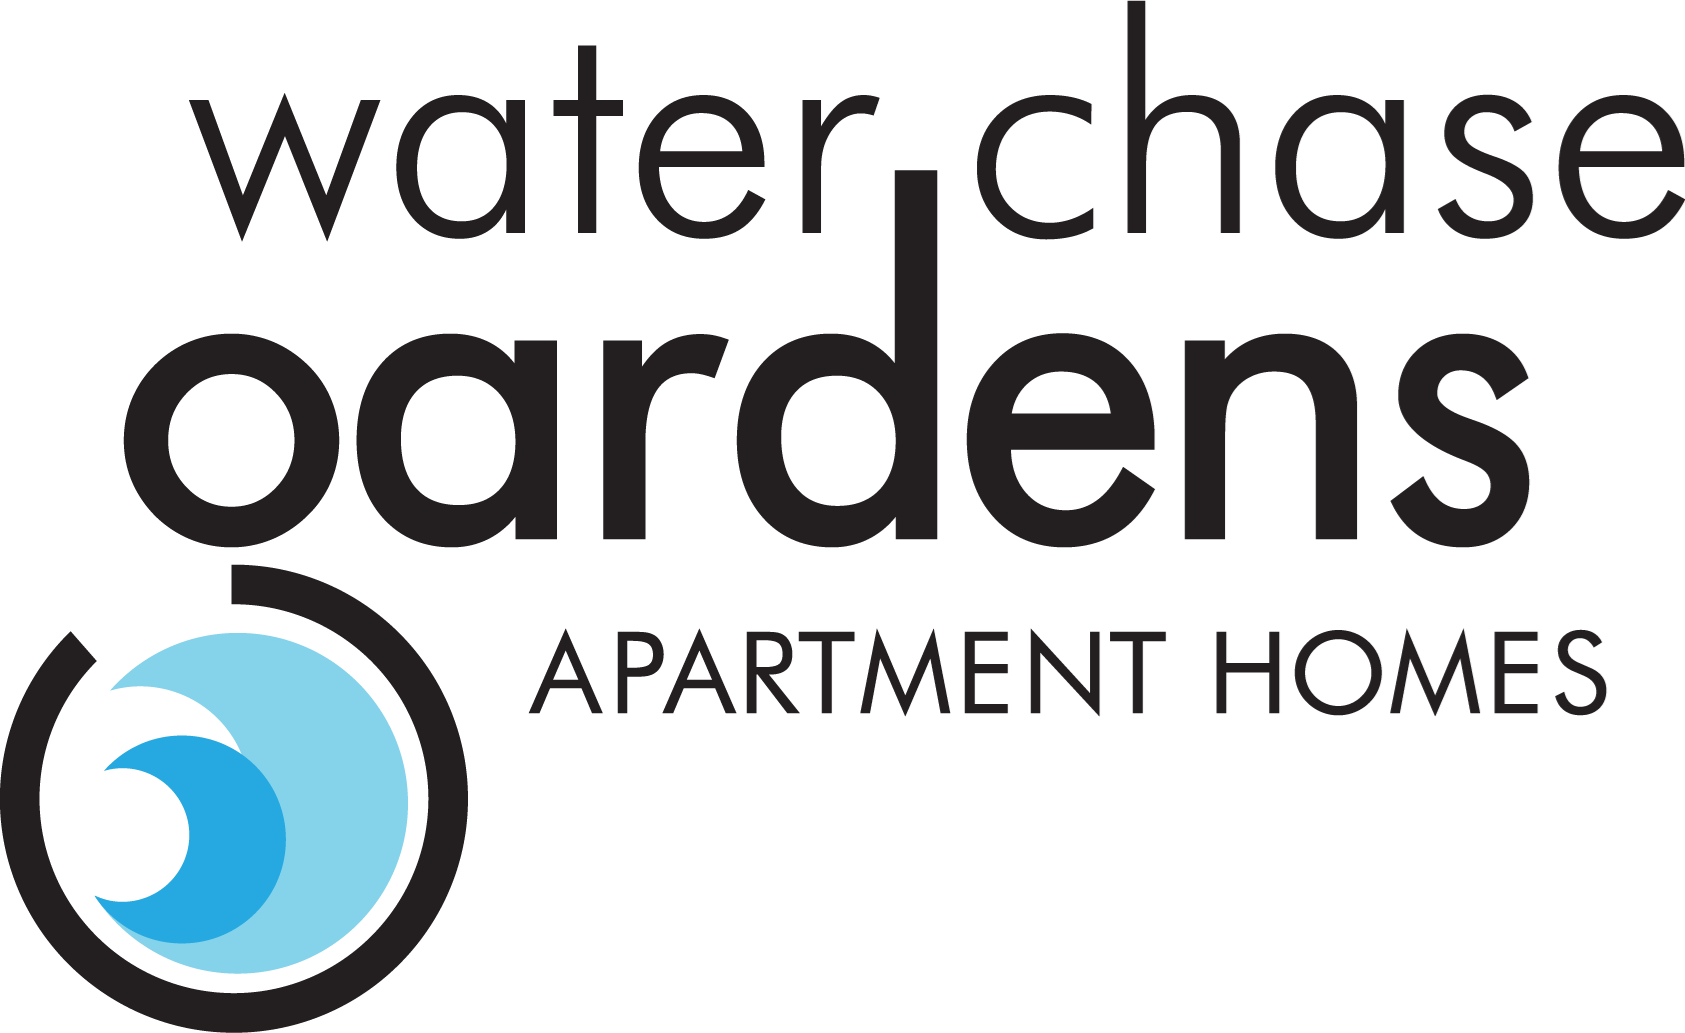 Waterchase Gardens Apartment Homes Logo